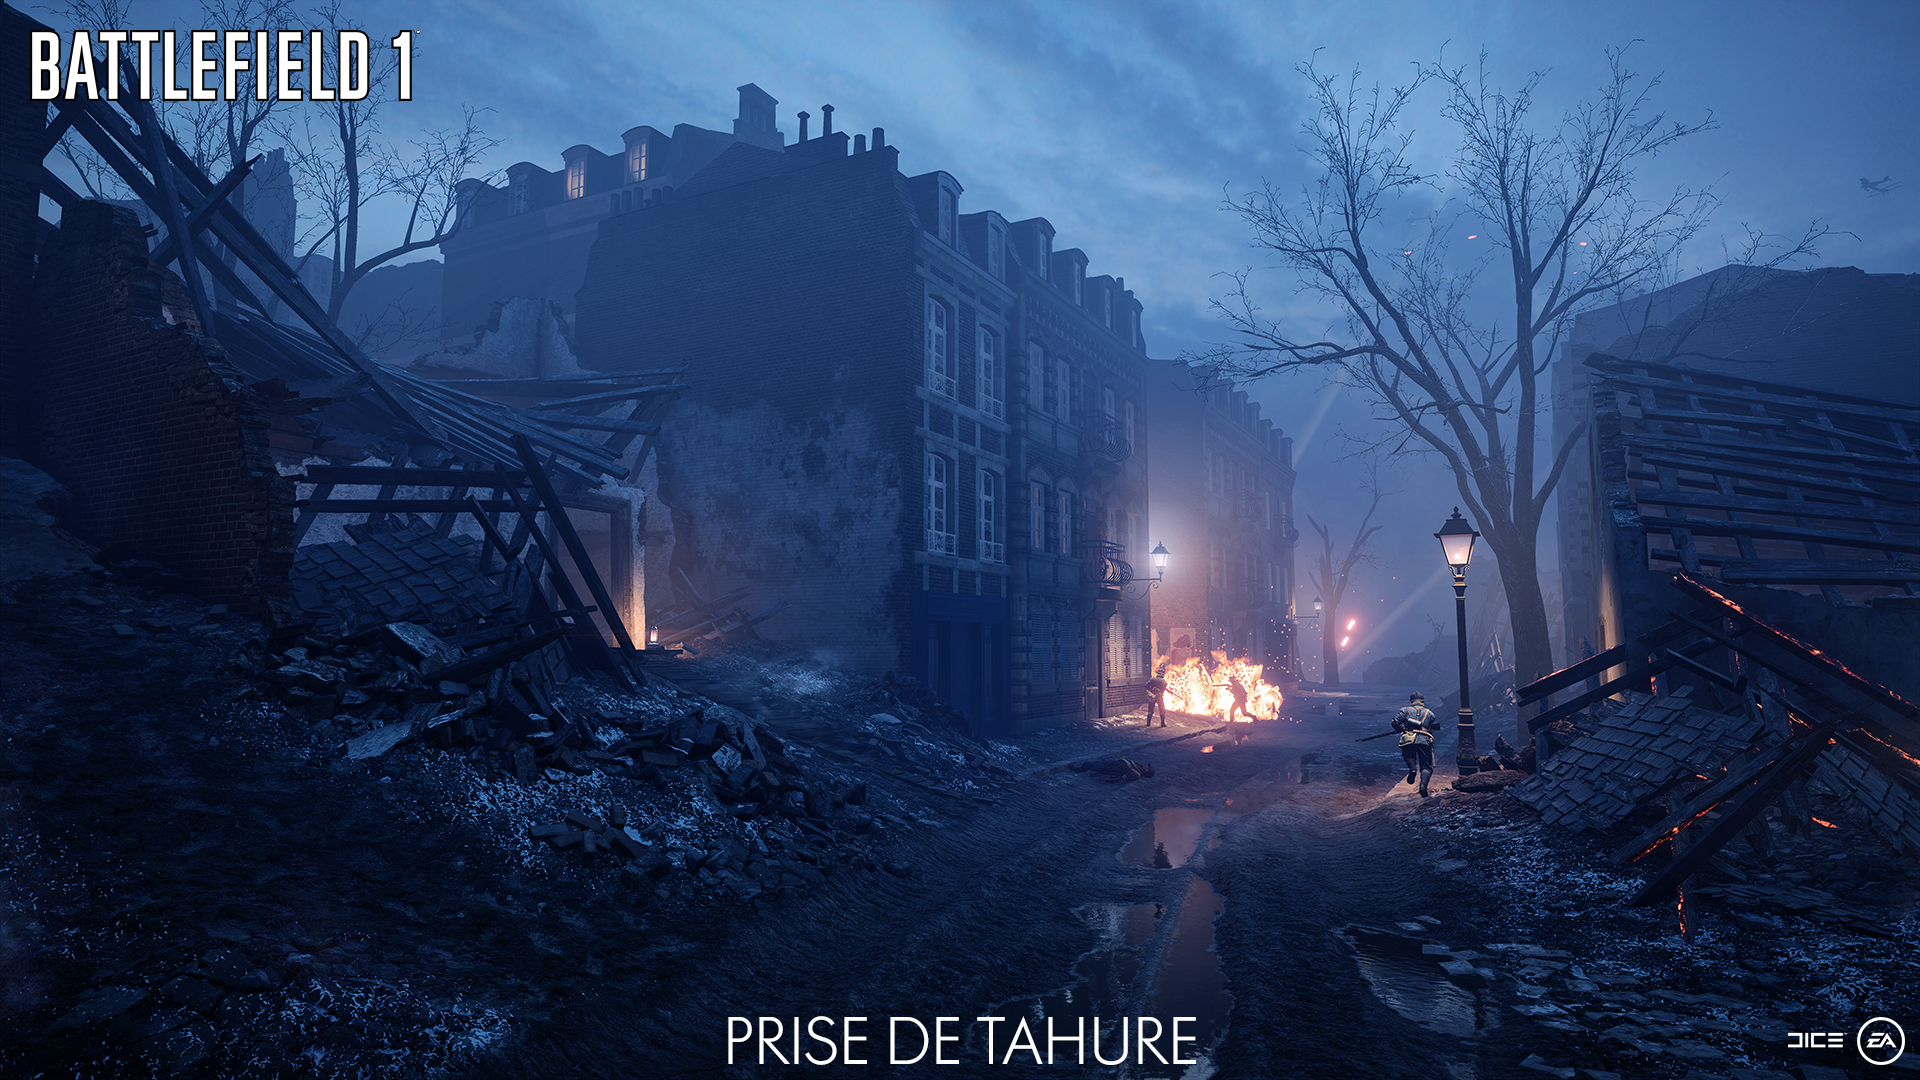 Nivelle Nights will release on June 20th with Battlefield 1's June Update.